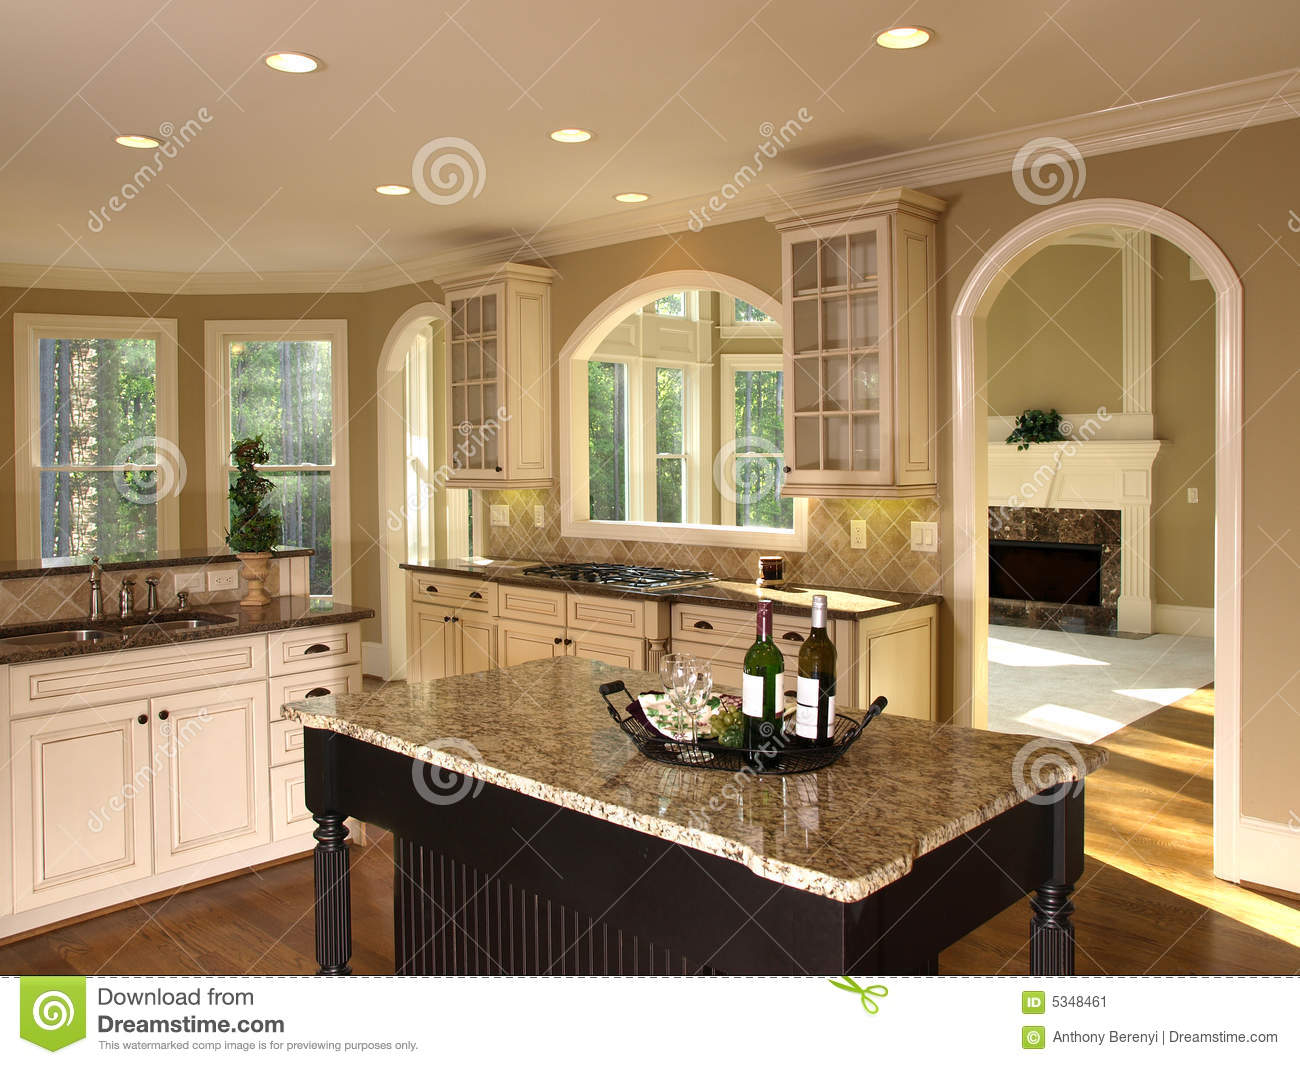 luxury model home kitchen island stock image image of